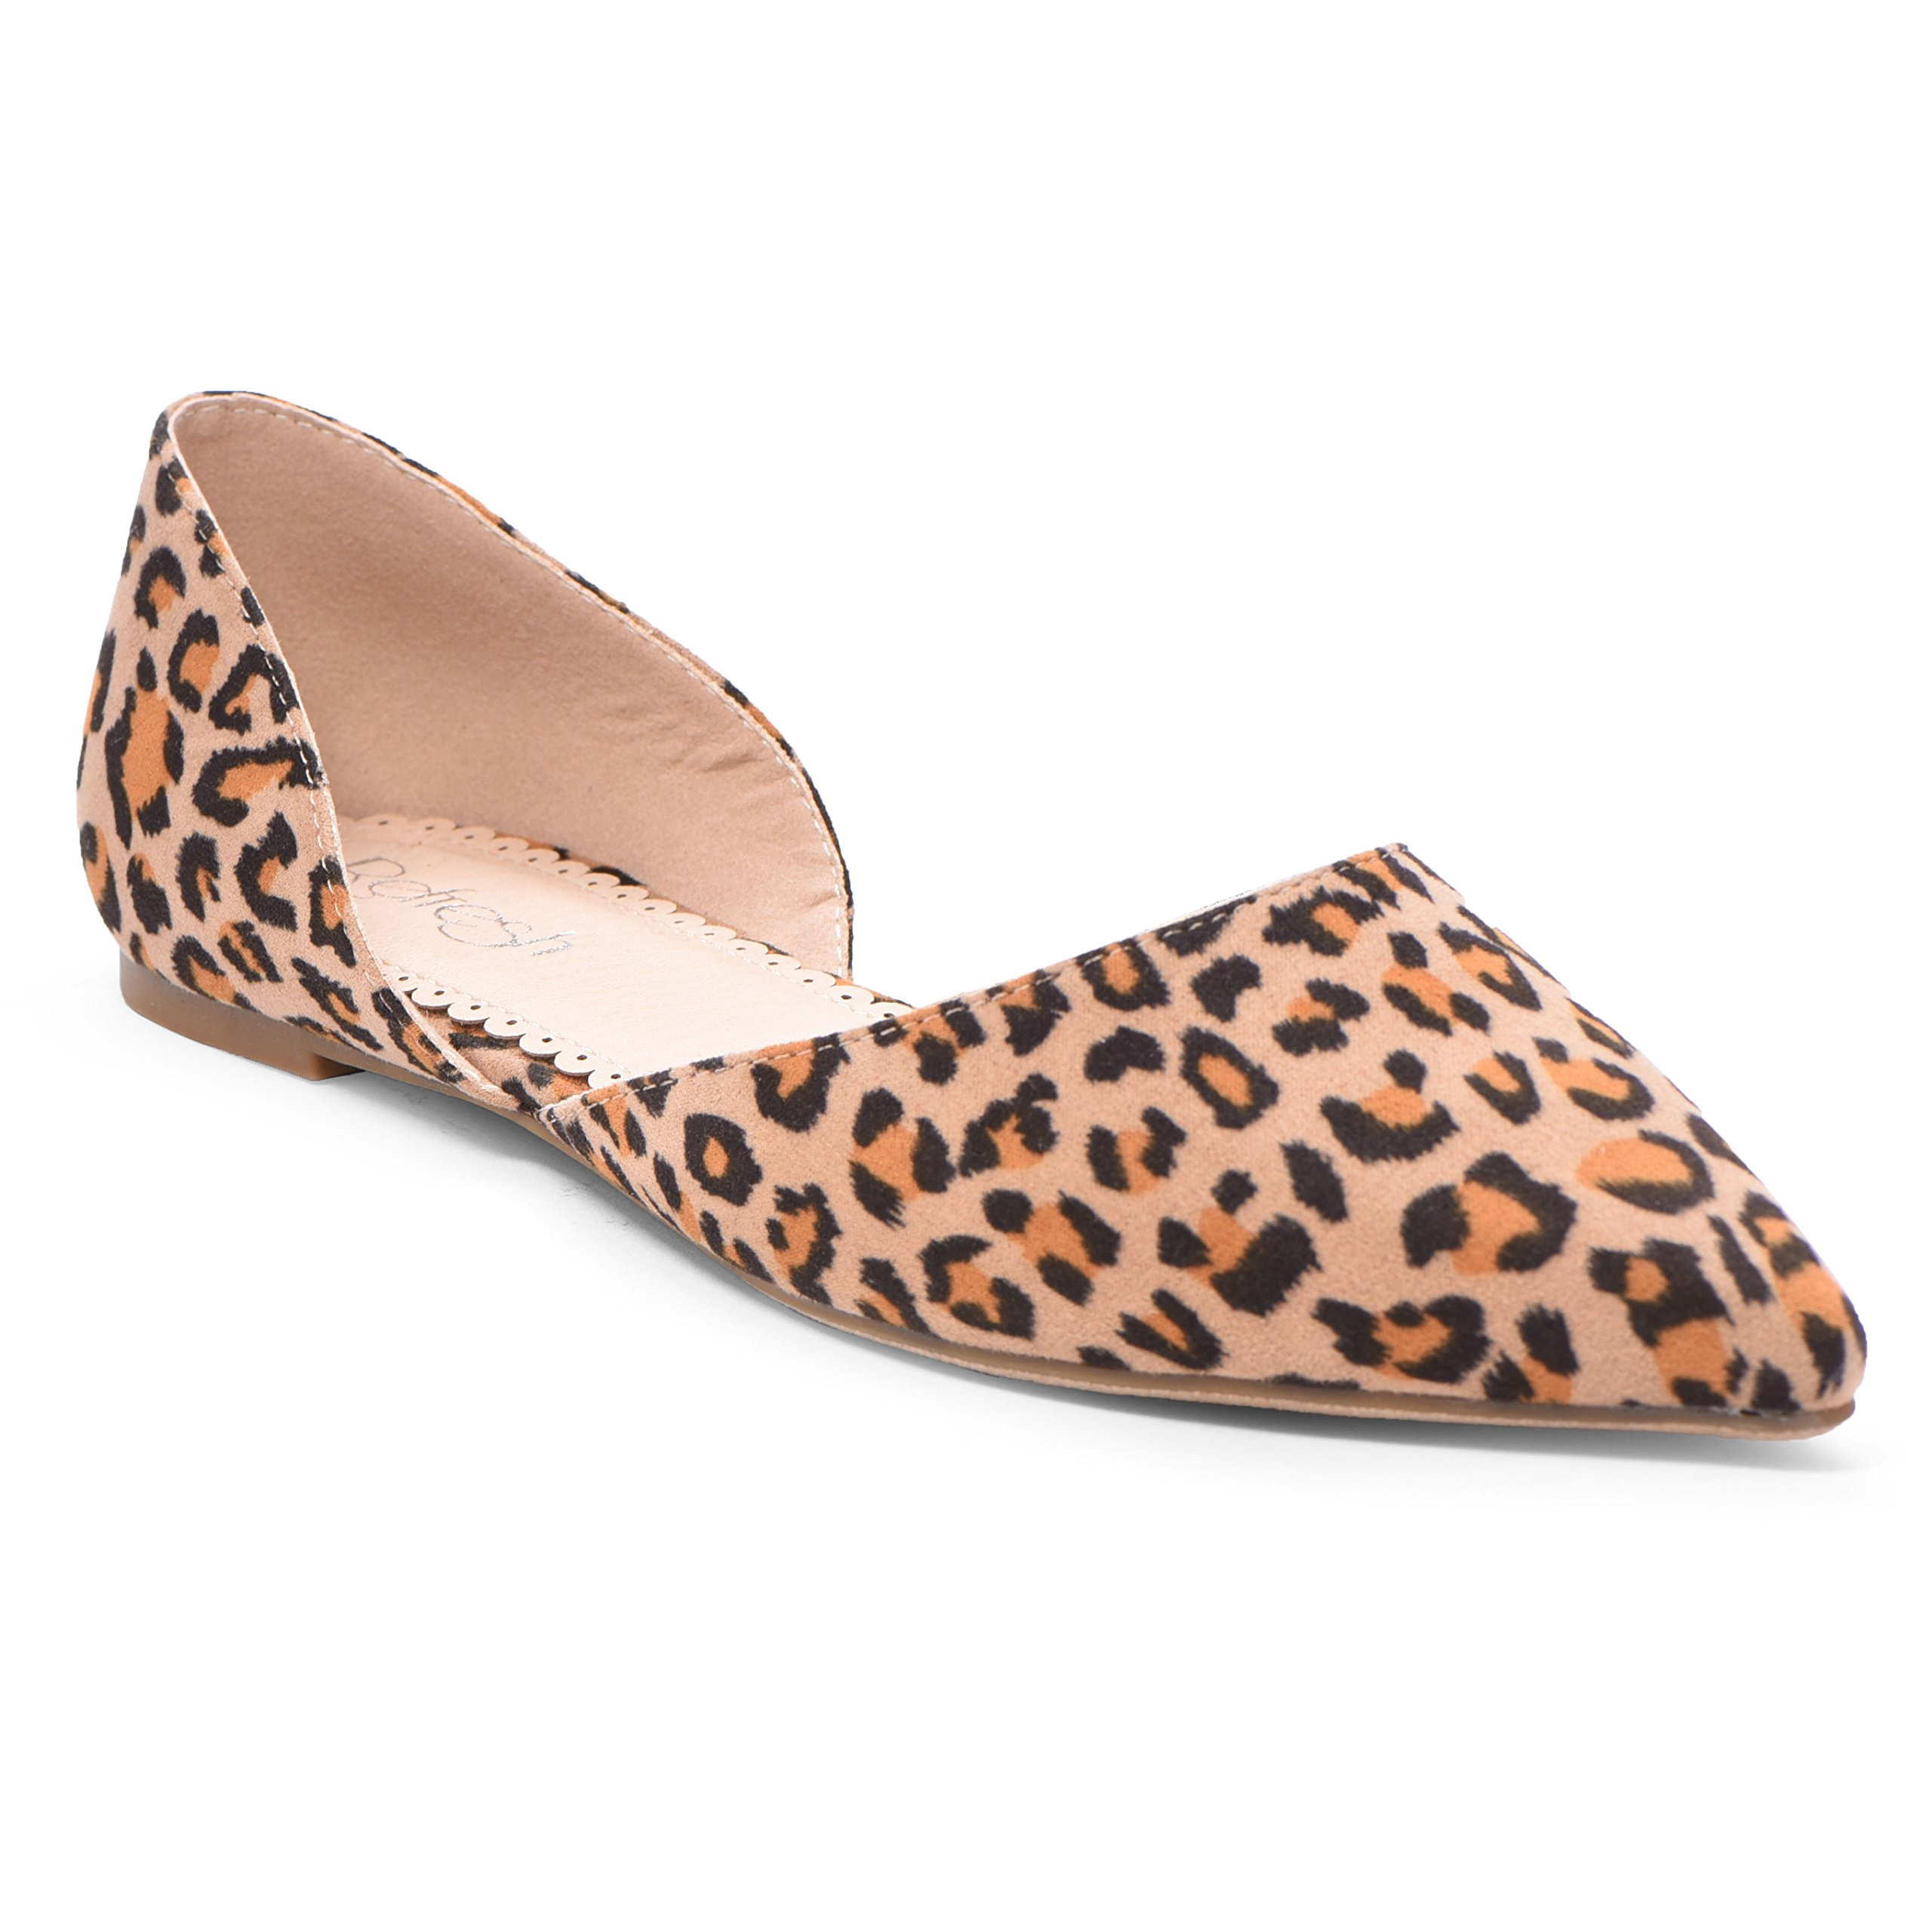 Women's Ballet Flat D'Orsay Comfort Light Pointed Toe Slip On Casual Shoes Leopard Suede 8.5